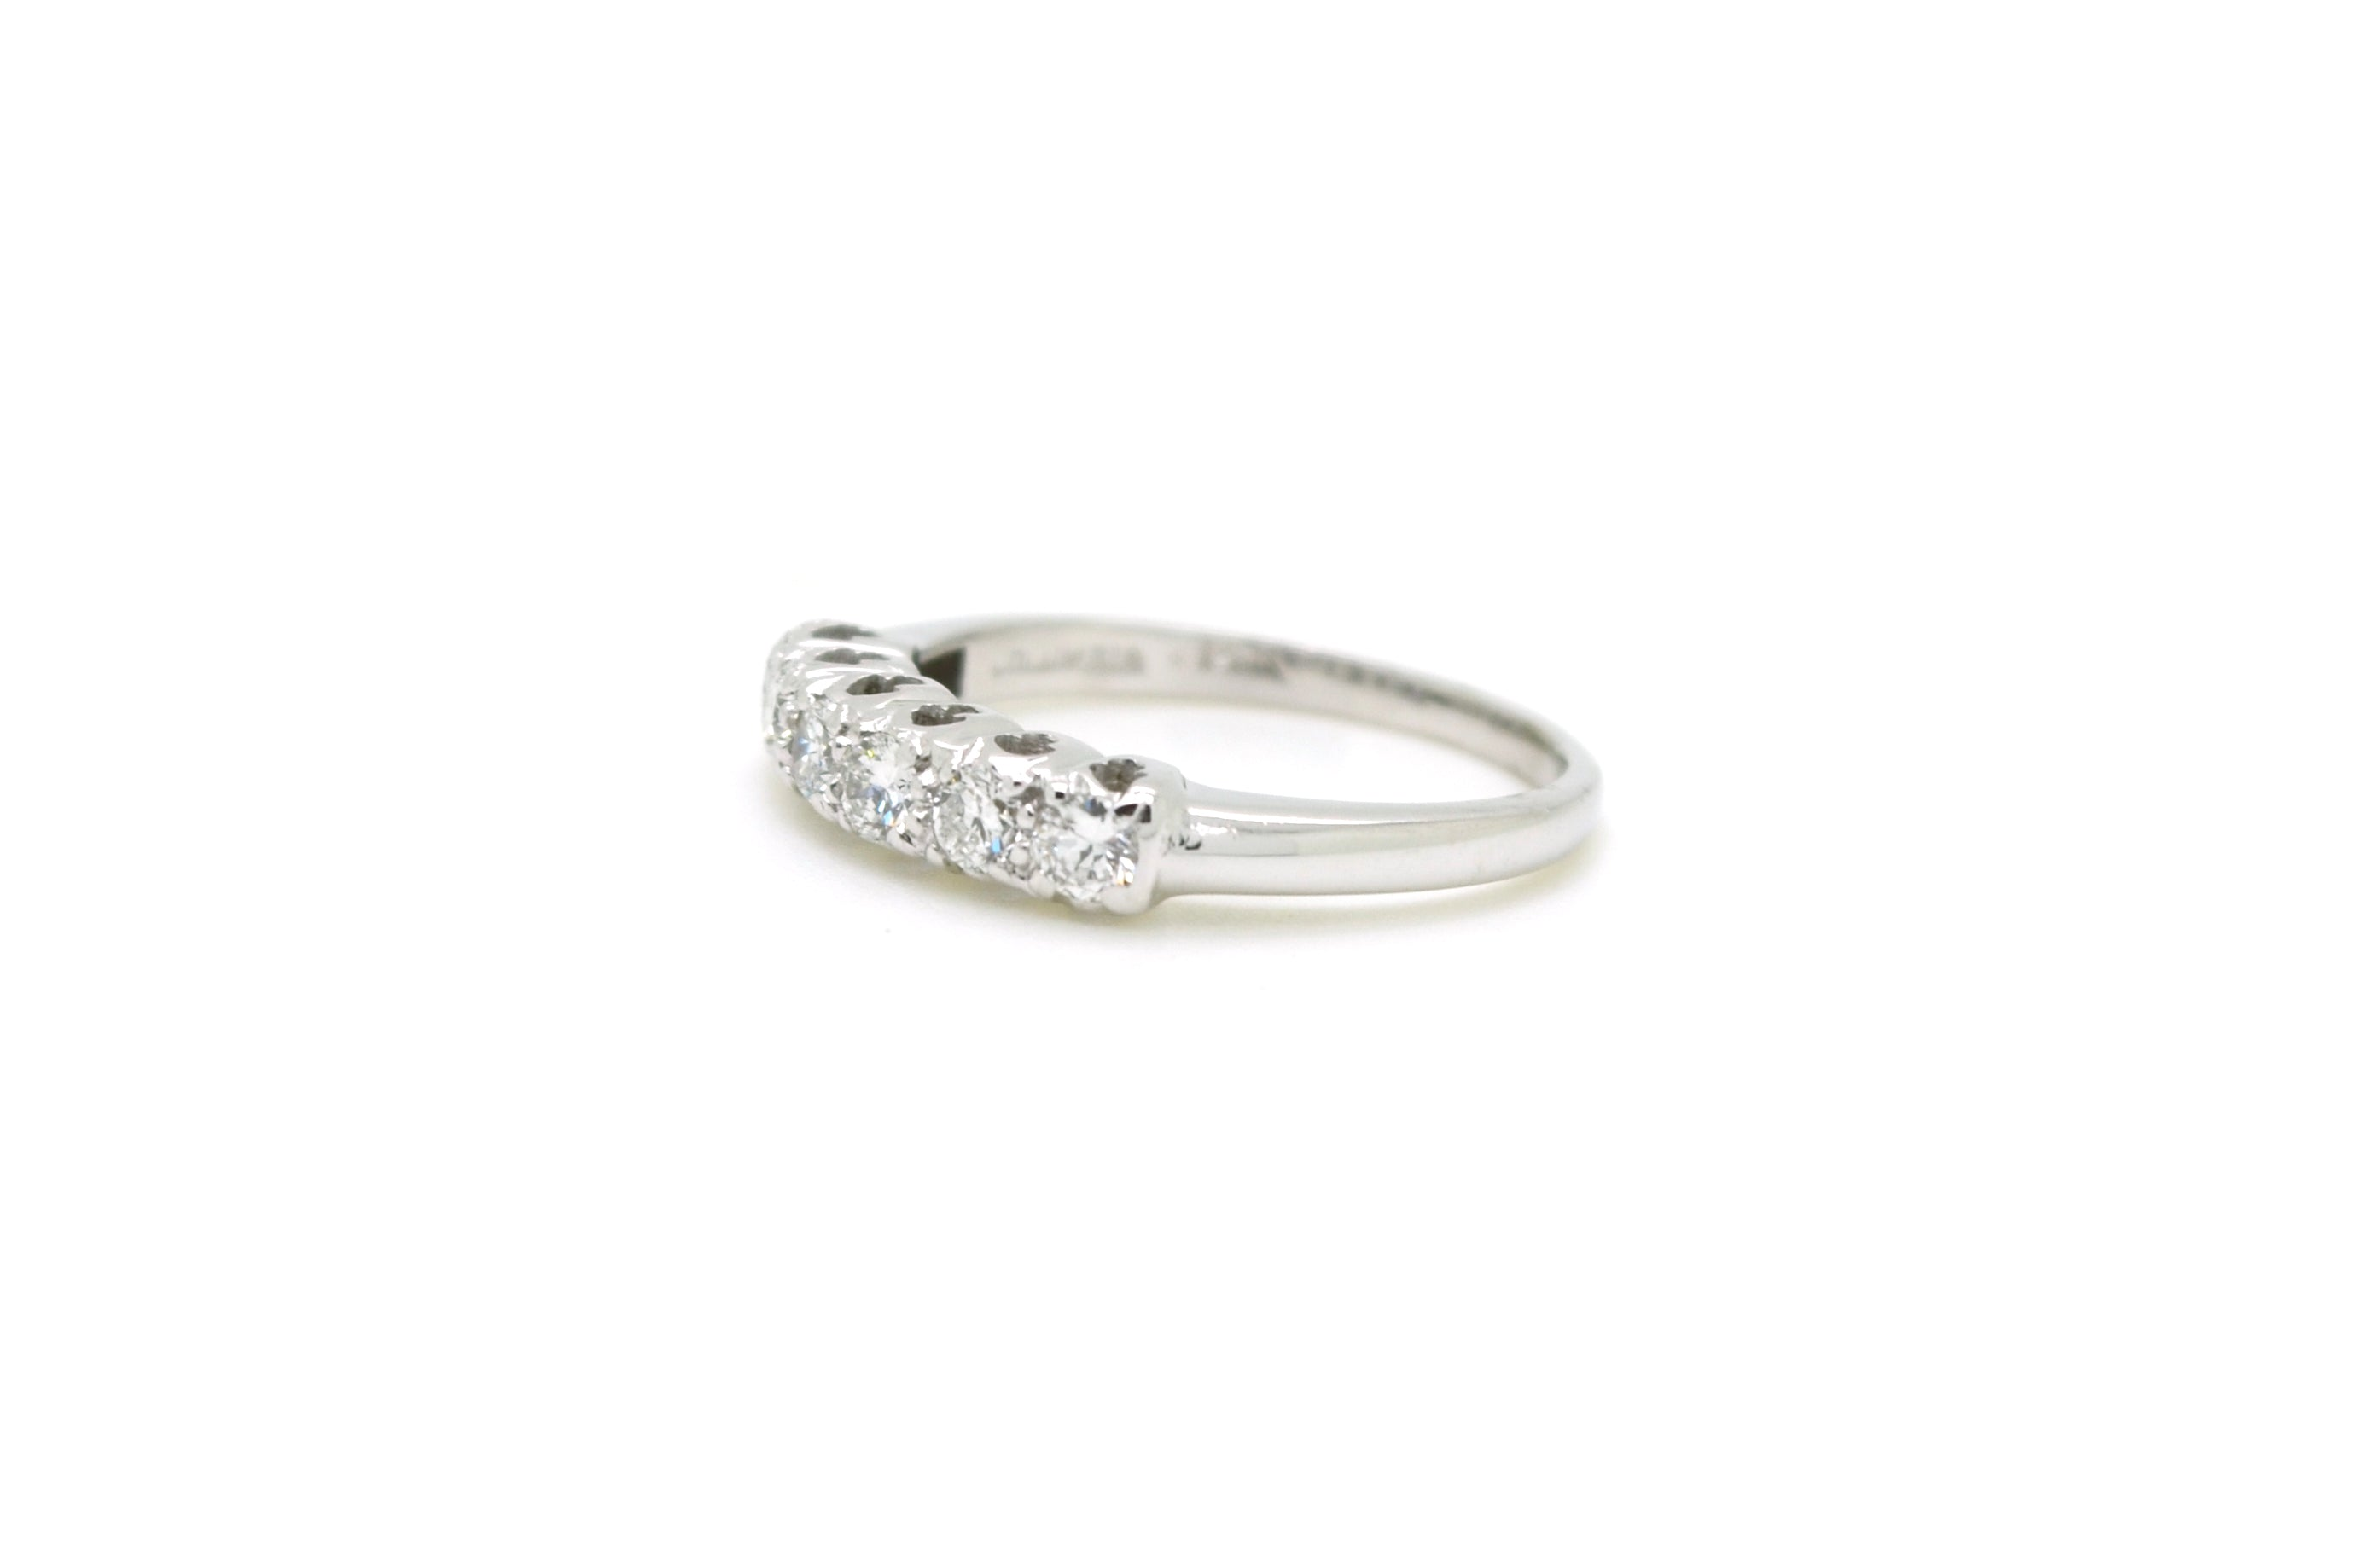 14k White Gold Round Diamond Six Stone Band Ring - .45 ct. total - Size 6.5